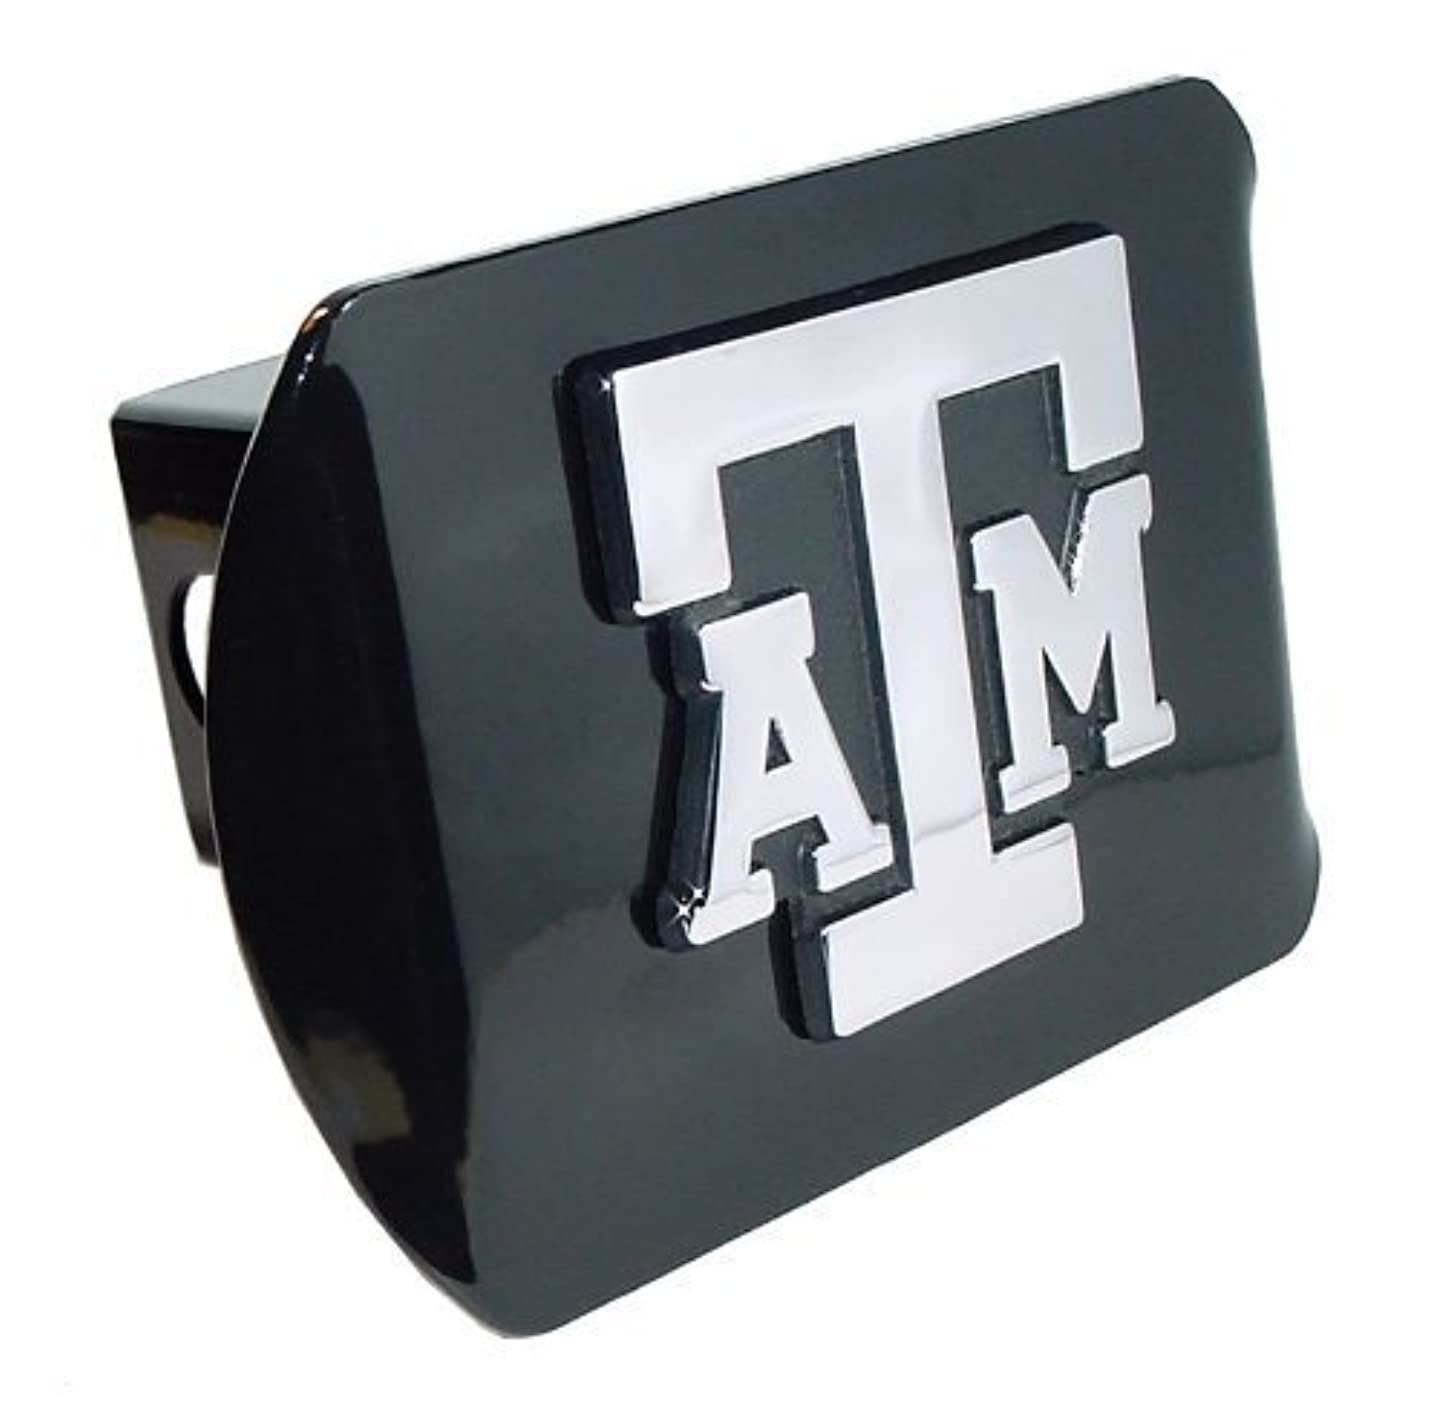 Texas A&M Aggies Black Metal Trailer Hitch Cover with Chrome Metal Logo (For 2